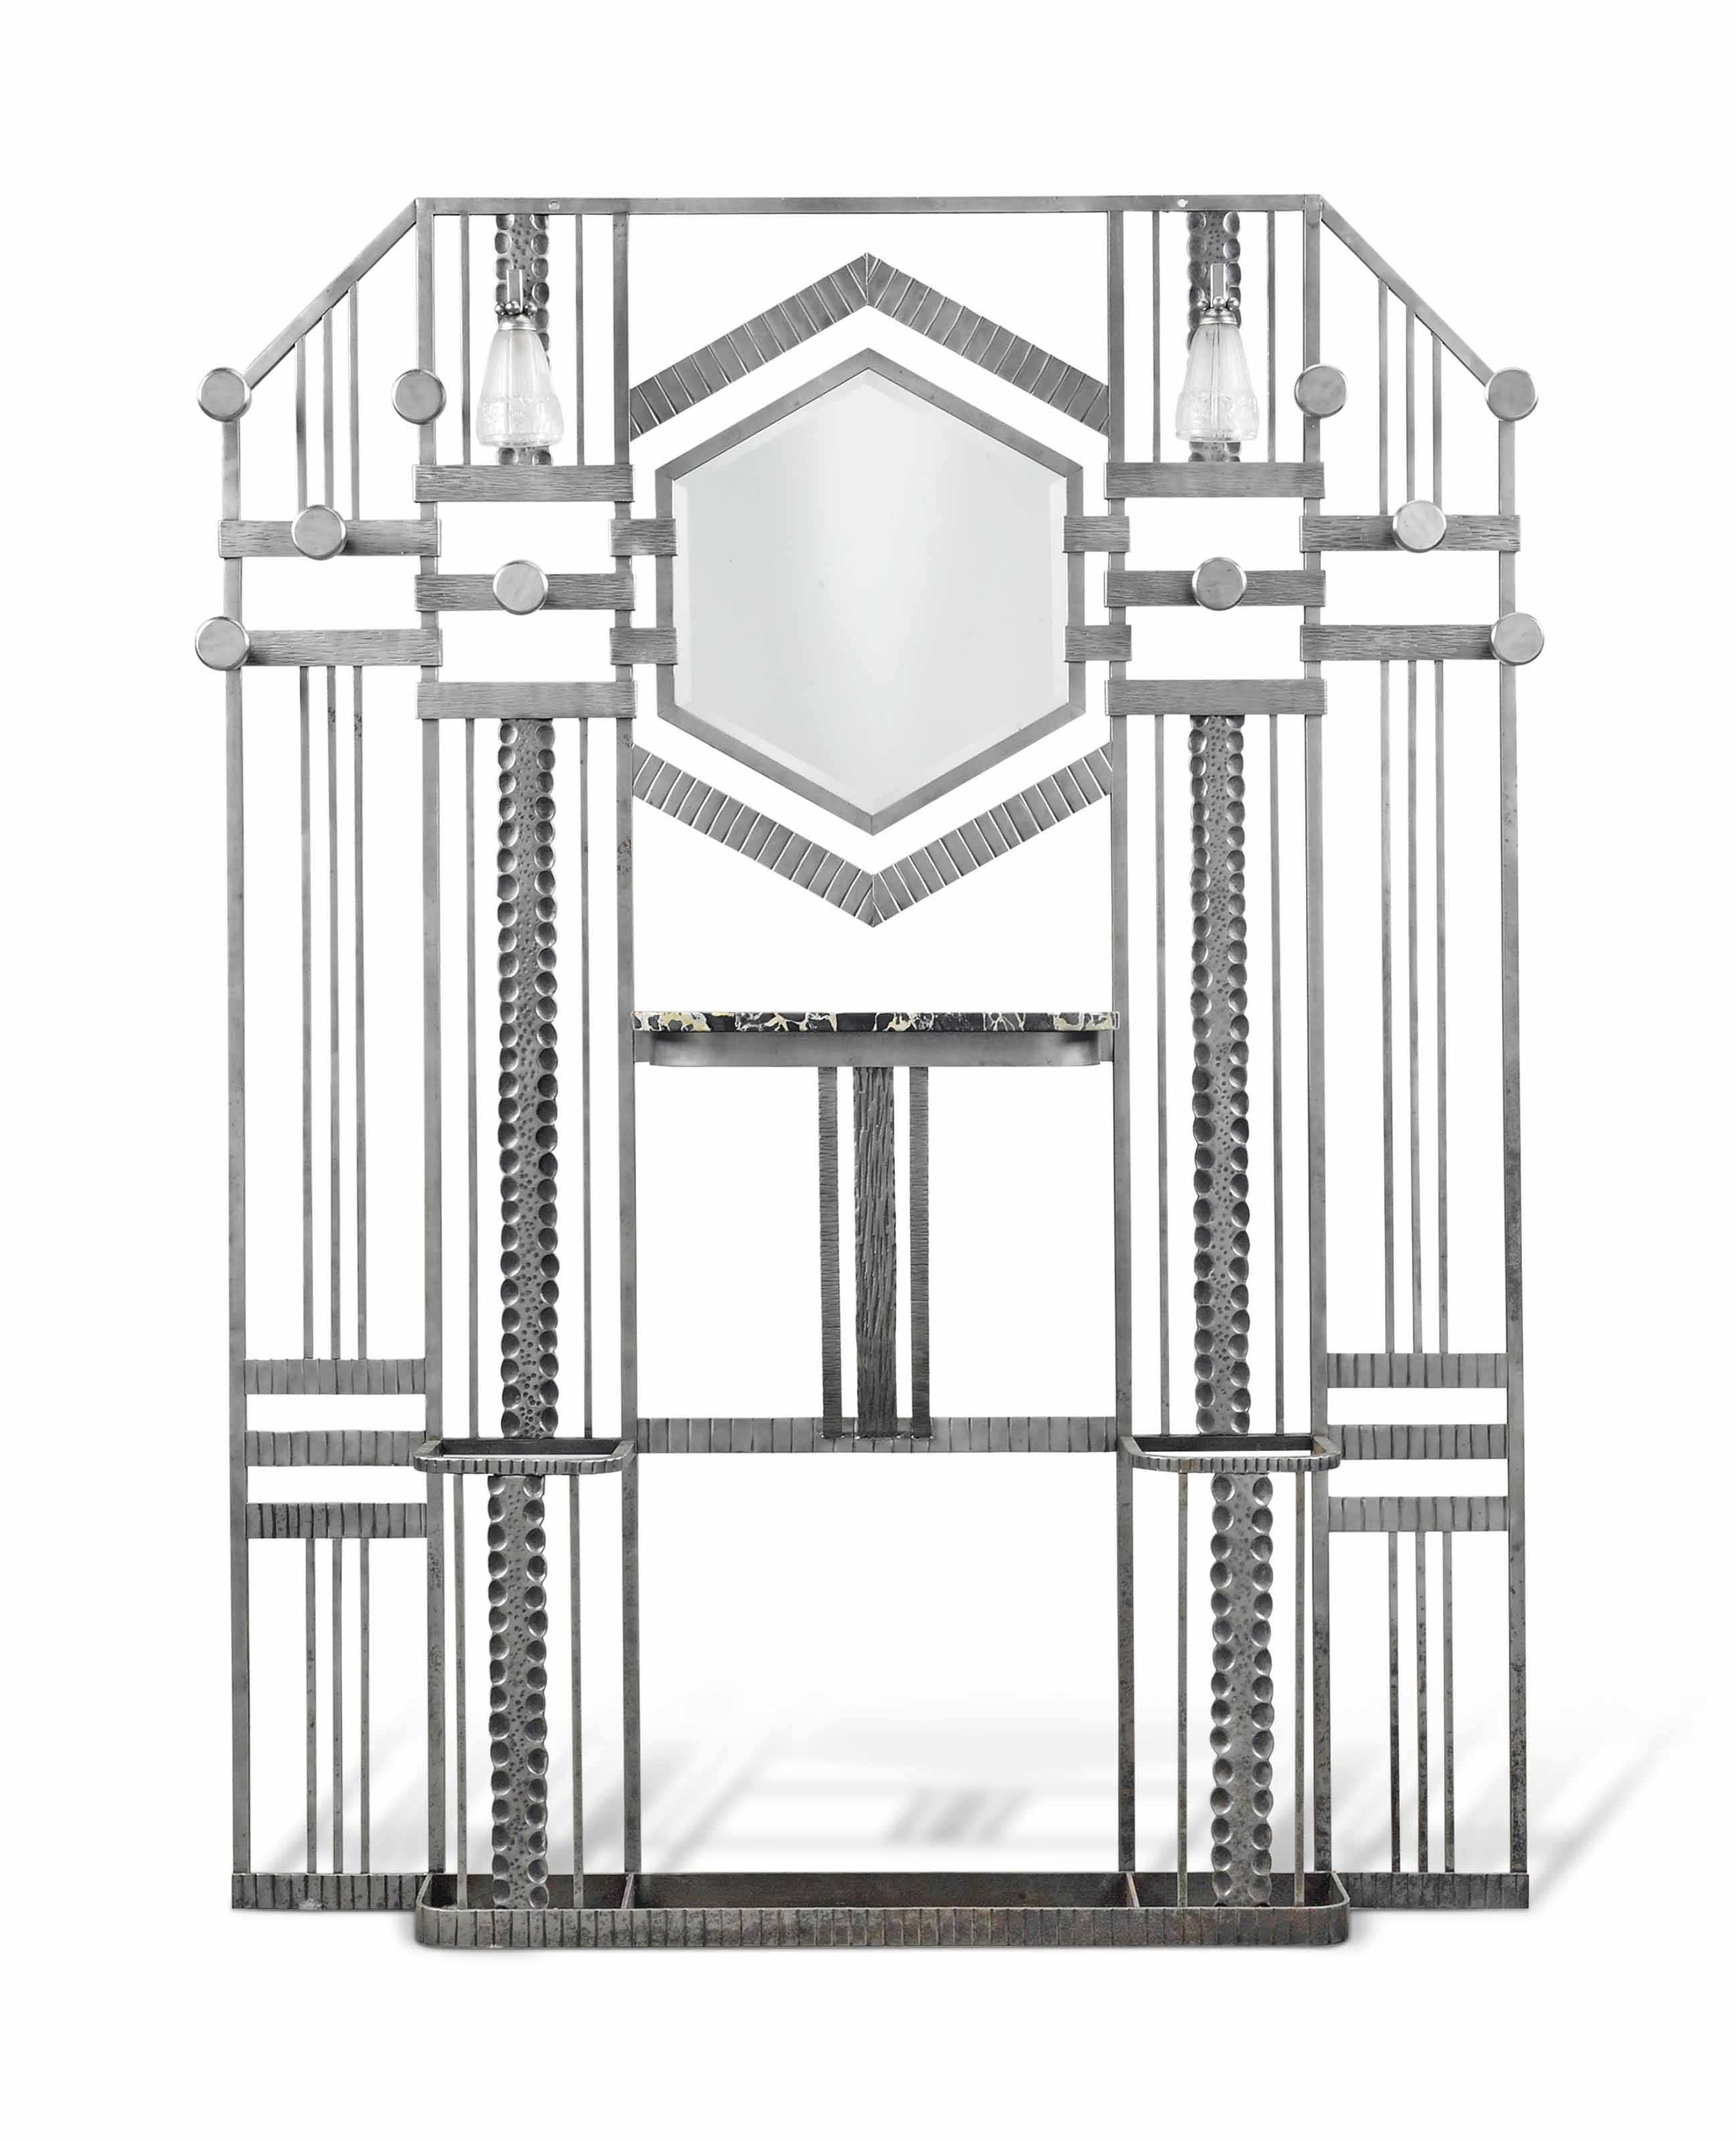 A PAUL KISS (1885-1962) ART DECO WROUGHT-IRON, PORTOR MARBLE AND GLASS HALL STAND